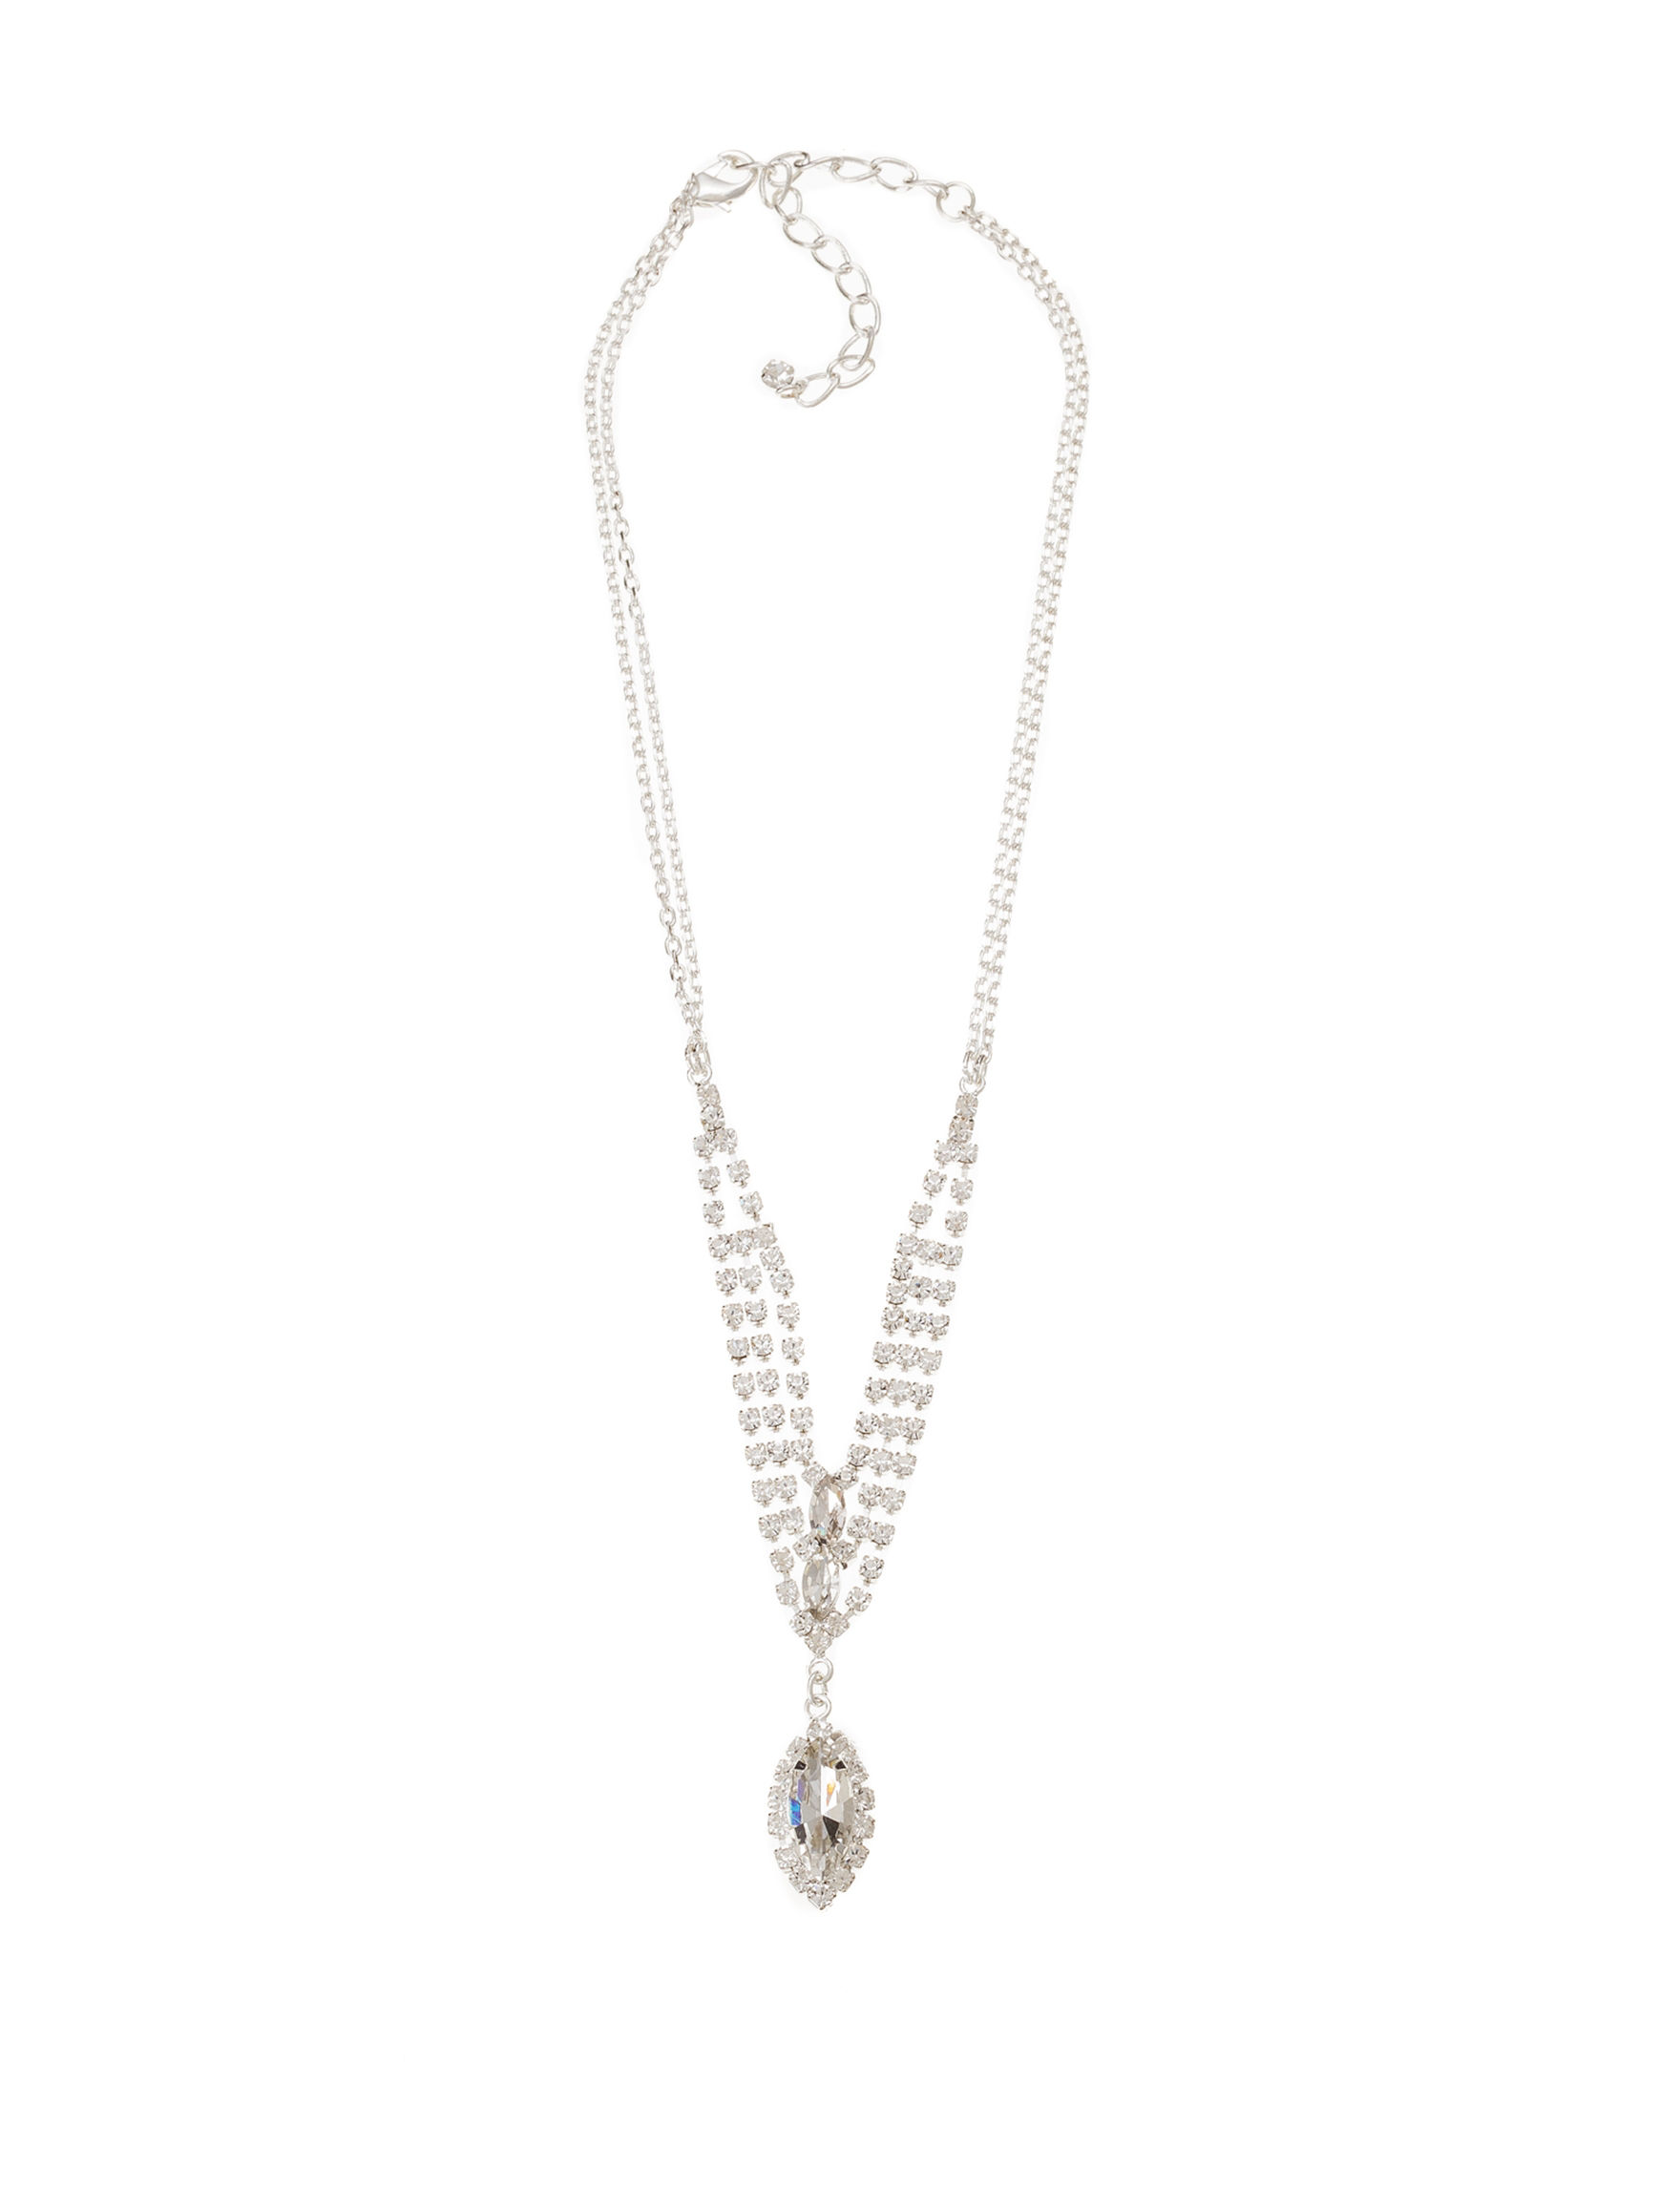 Via Roma Clear Necklaces & Pendants Fashion Jewelry